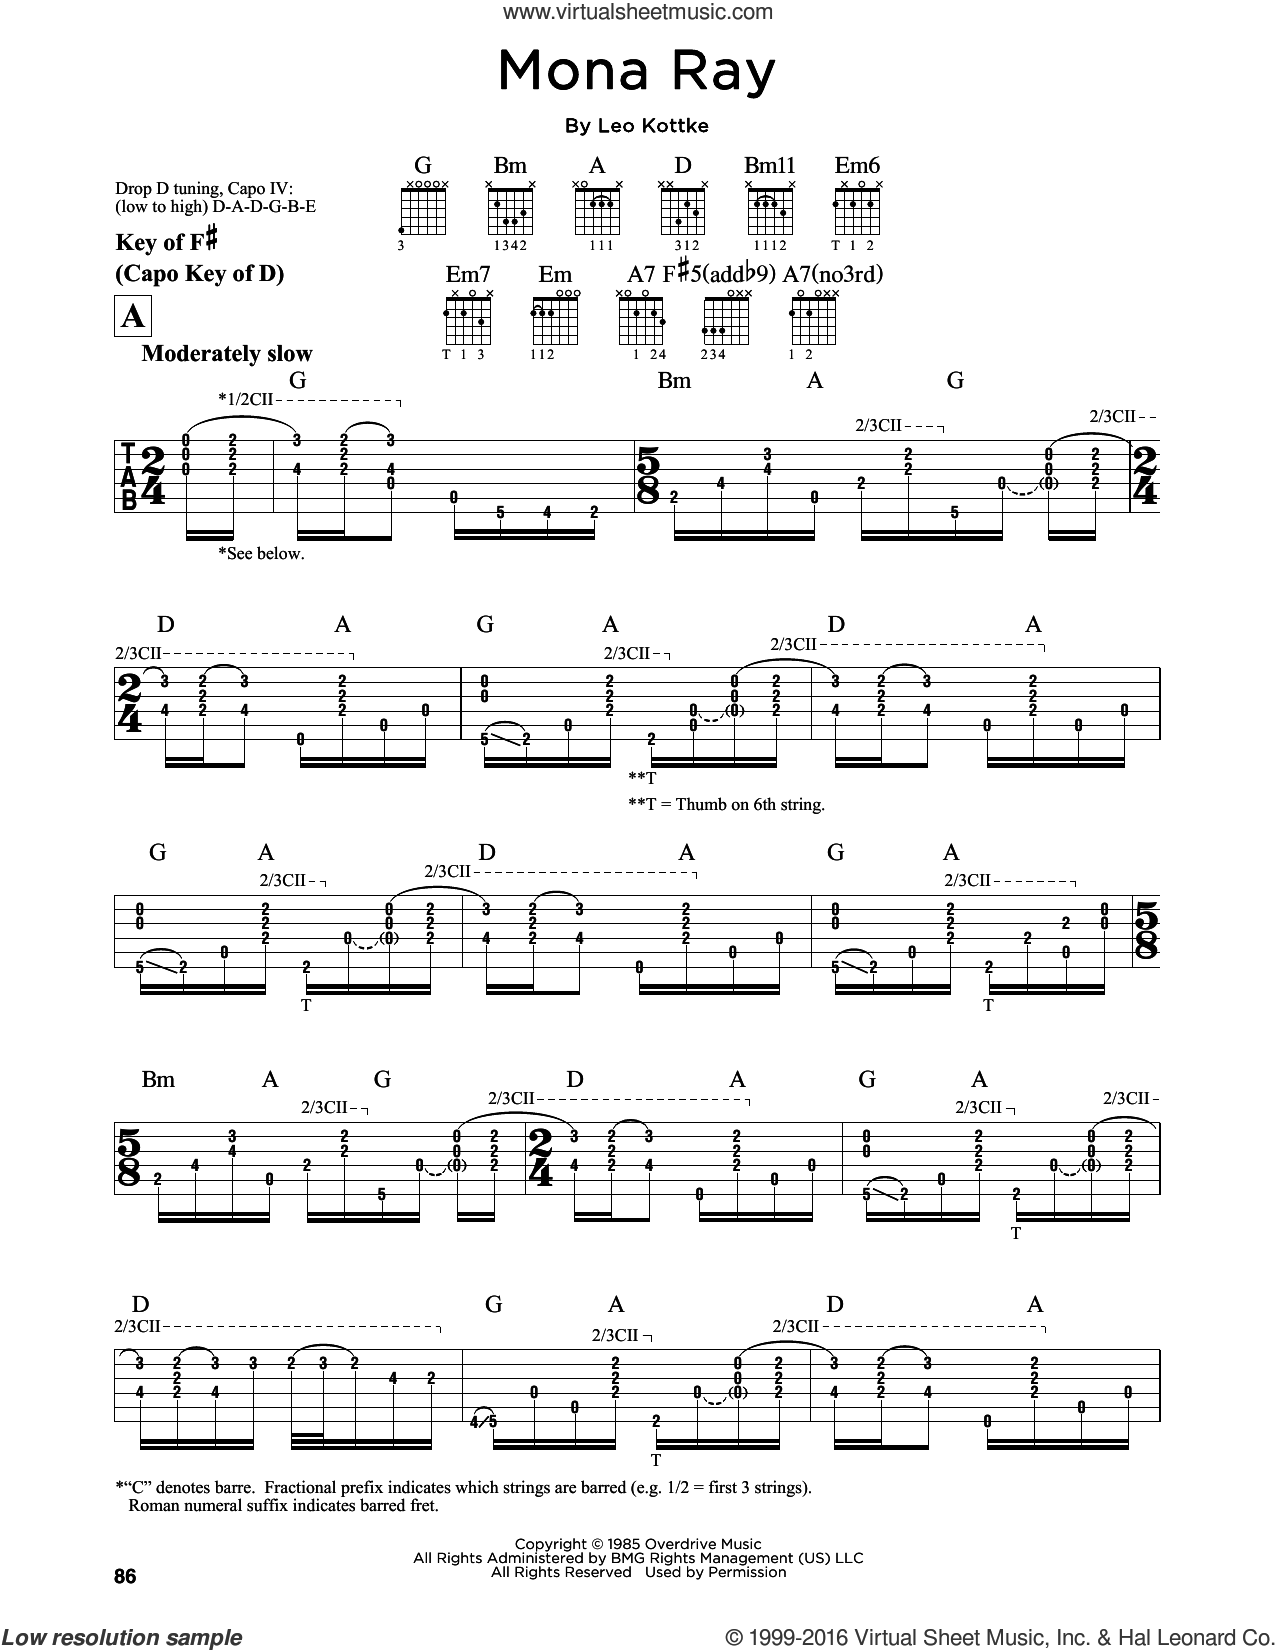 Mona Ray sheet music for guitar solo (lead sheet) by Leo Kottke, intermediate guitar (lead sheet)